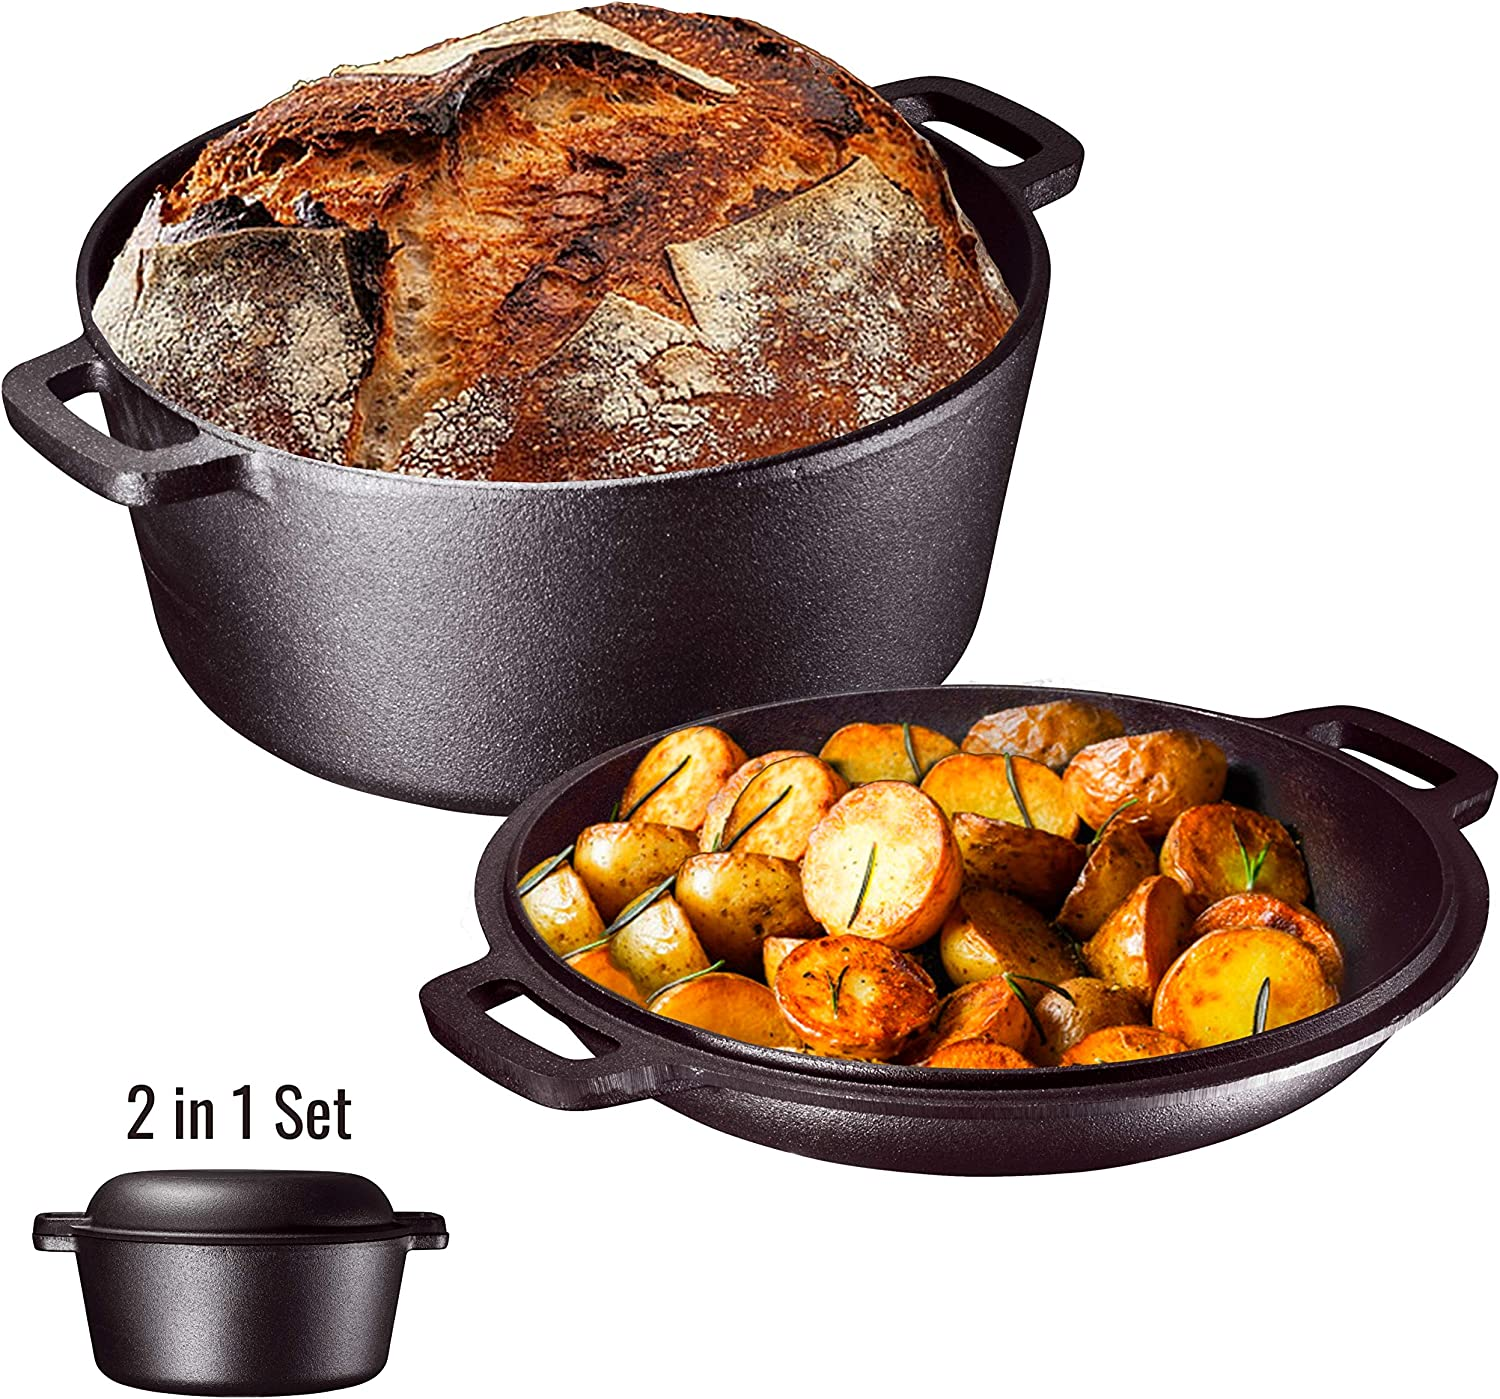 Heavy Duty Pre-Seasoned 2 In 1 Cast Iron Double Dutch Oven Set and Domed 10 inch Skillet Lid, Versatile Healthy Design, Non-Stick, 5-Quart